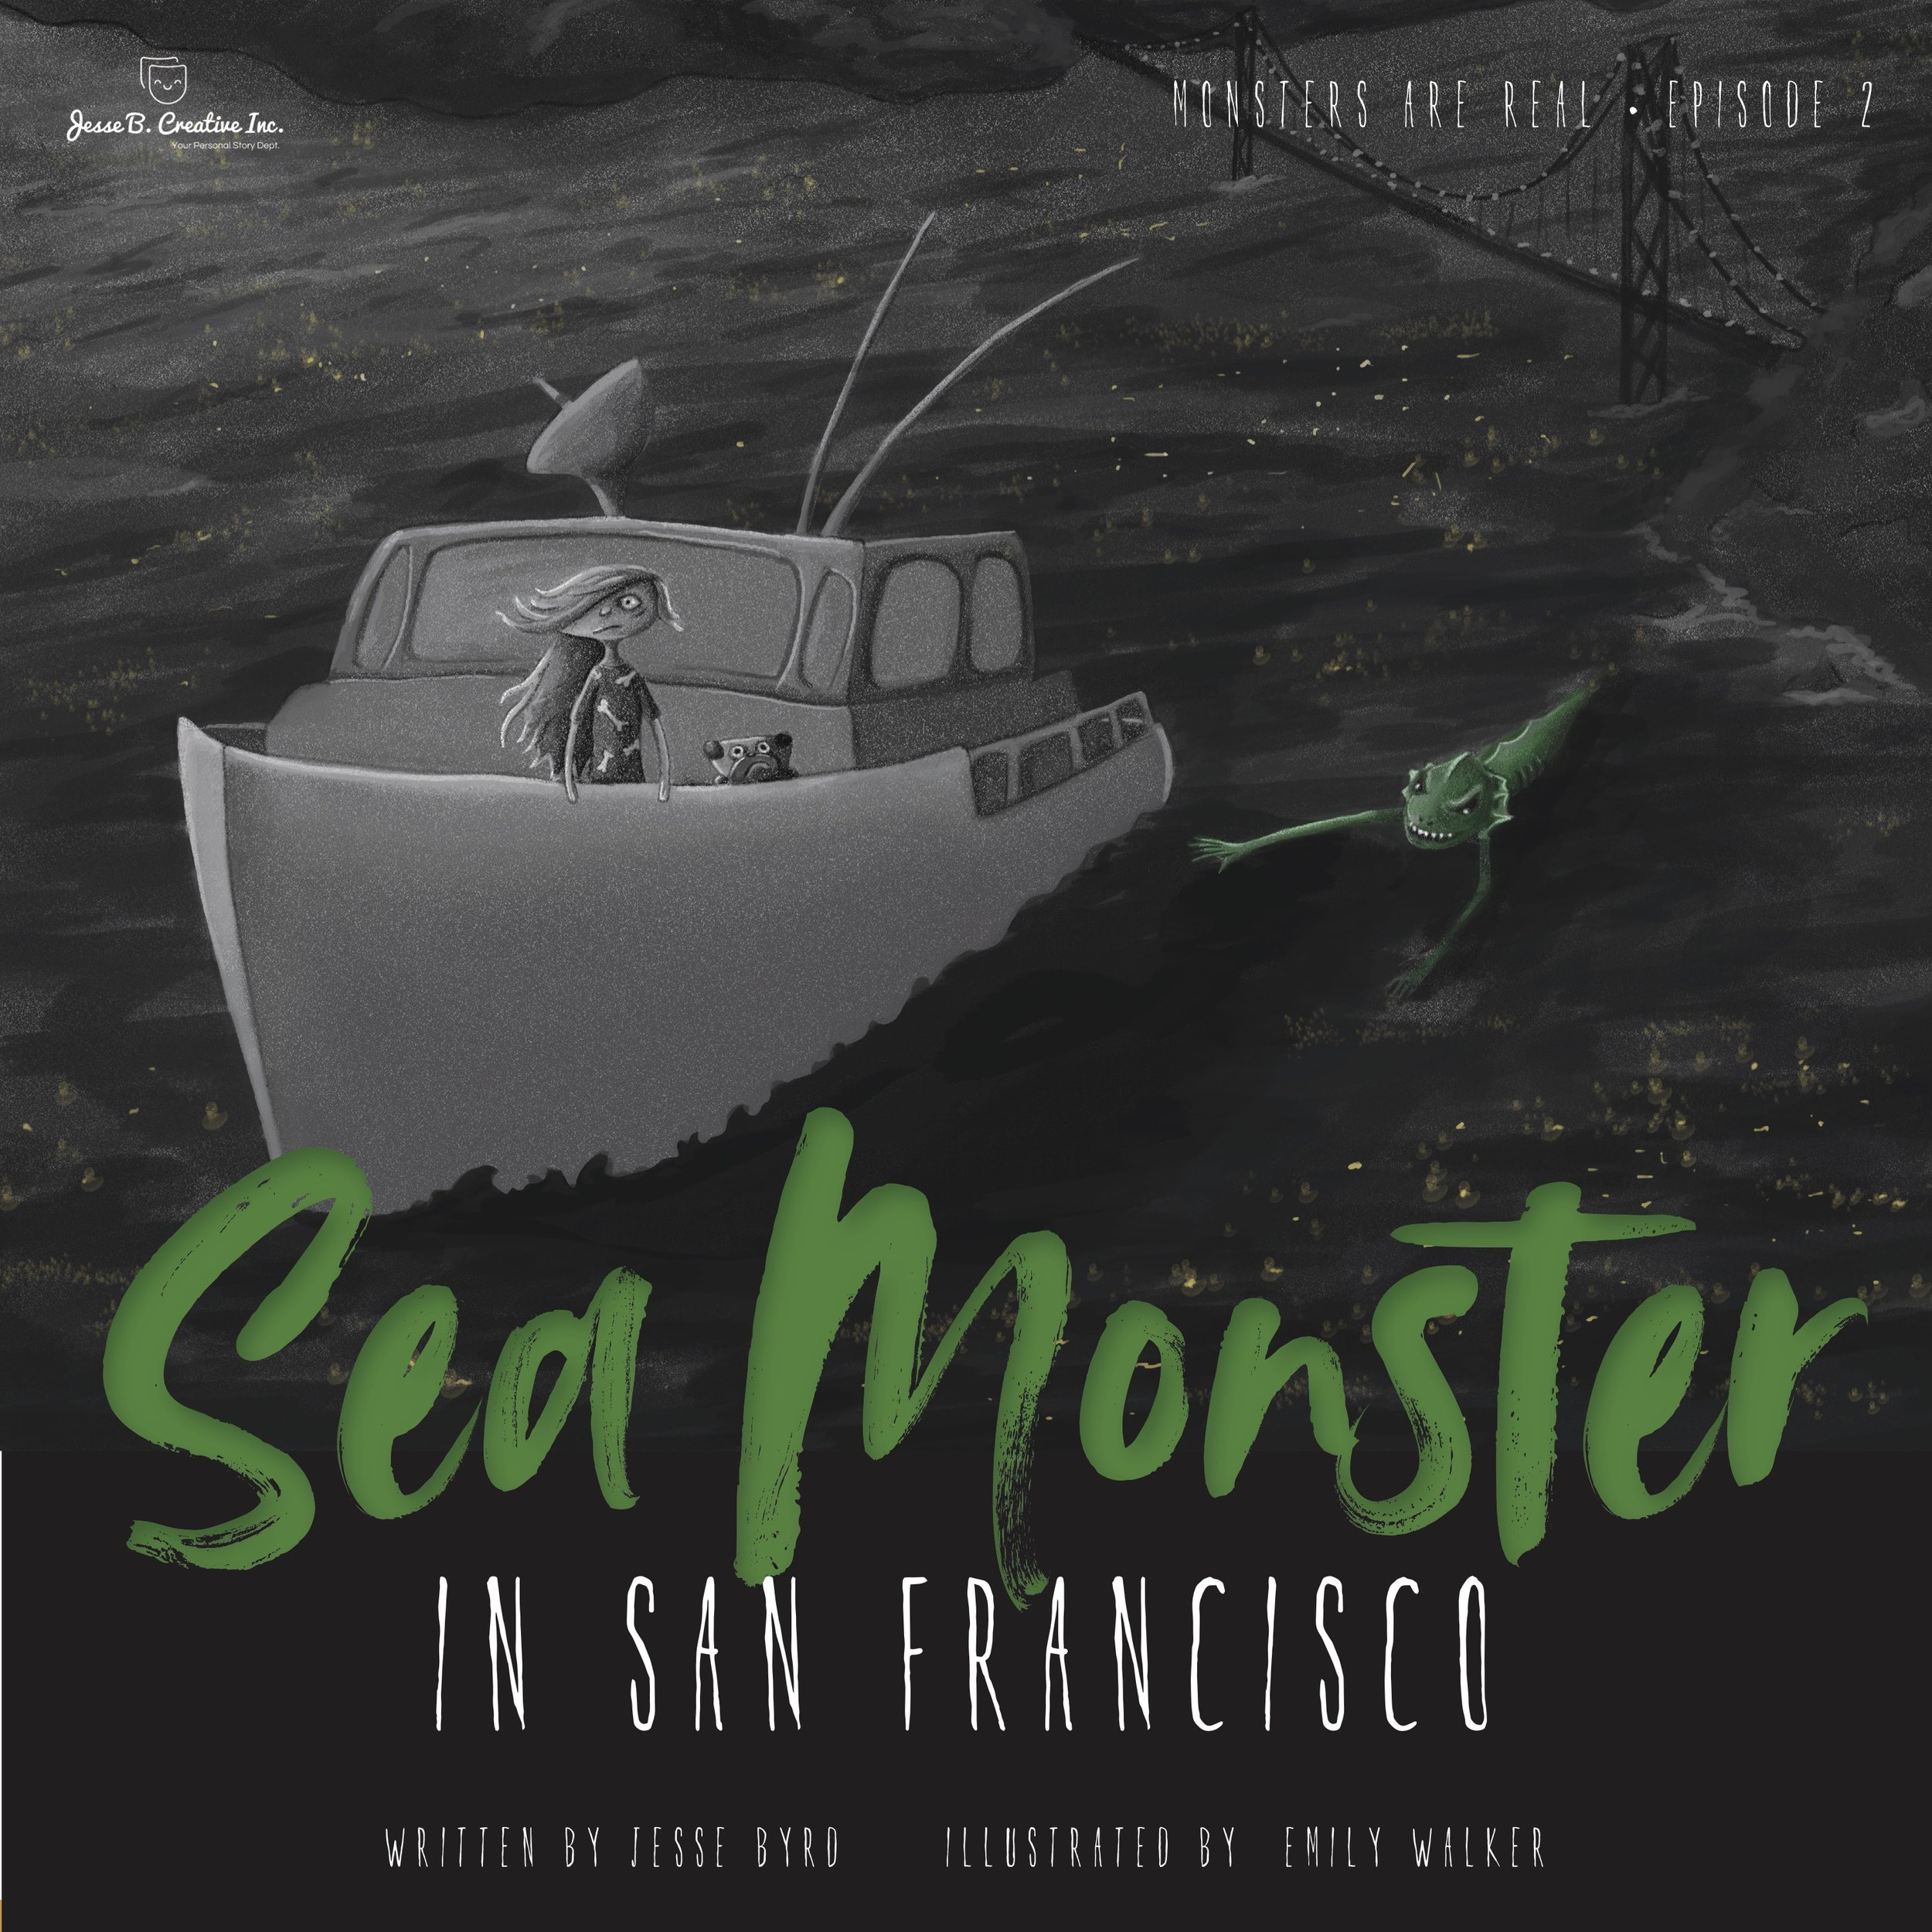 Episode 2 Sea Monster In San Francisco Monsters Are Real